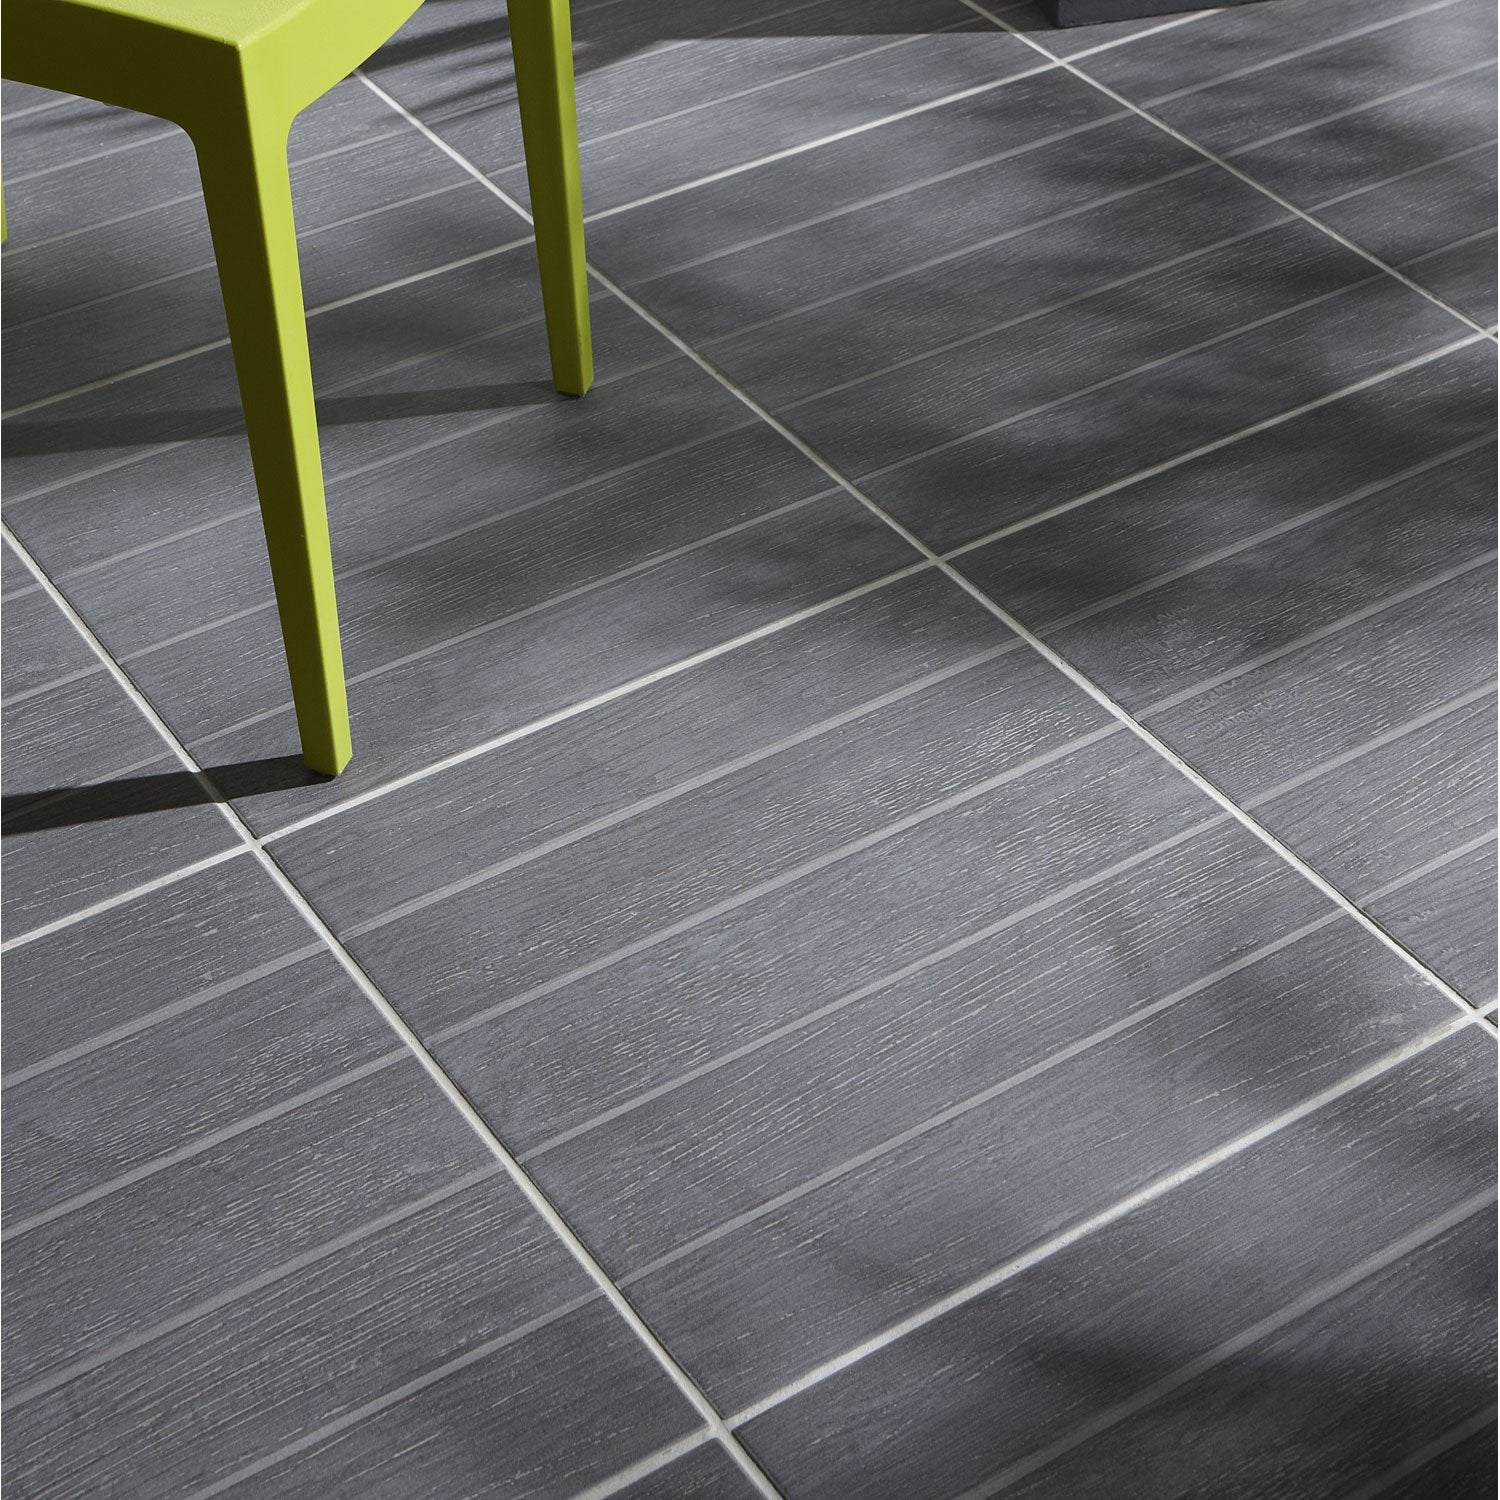 Qualit carrelage gr s c rame for Carrelage gres cerame 45x45